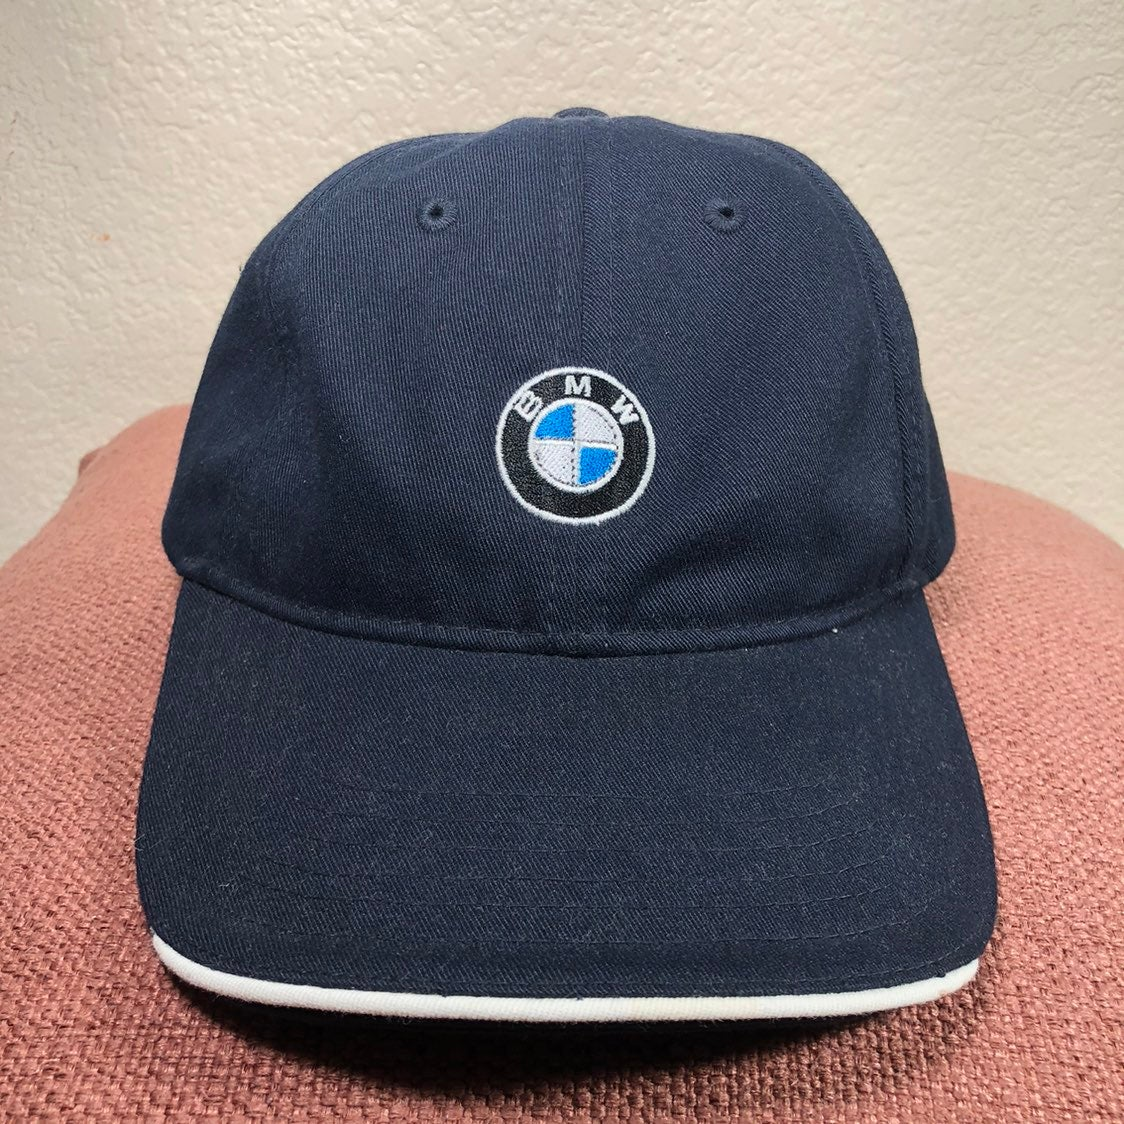 BMW Hat adjustable